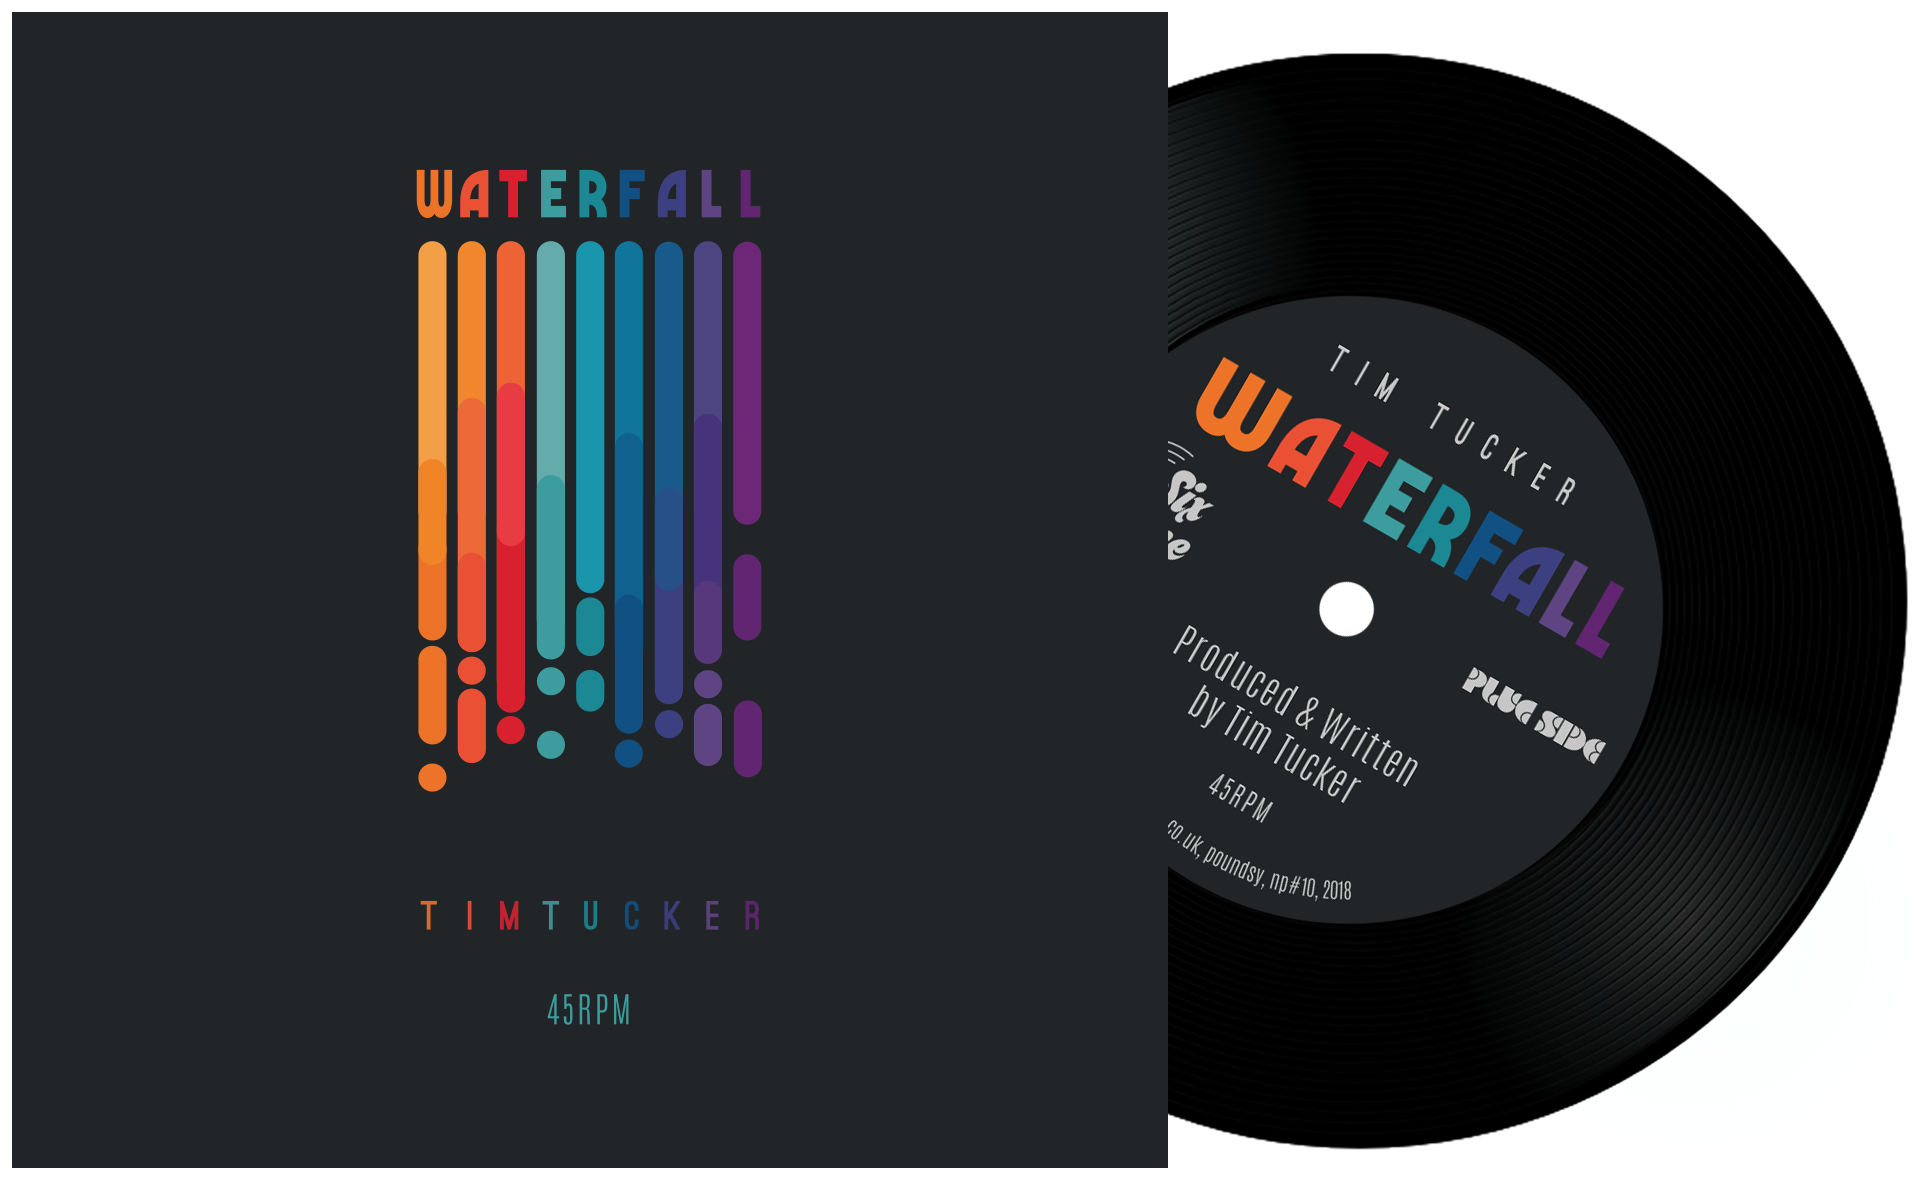 """Waterfall"" Limited Edition 45rpm vinyl"